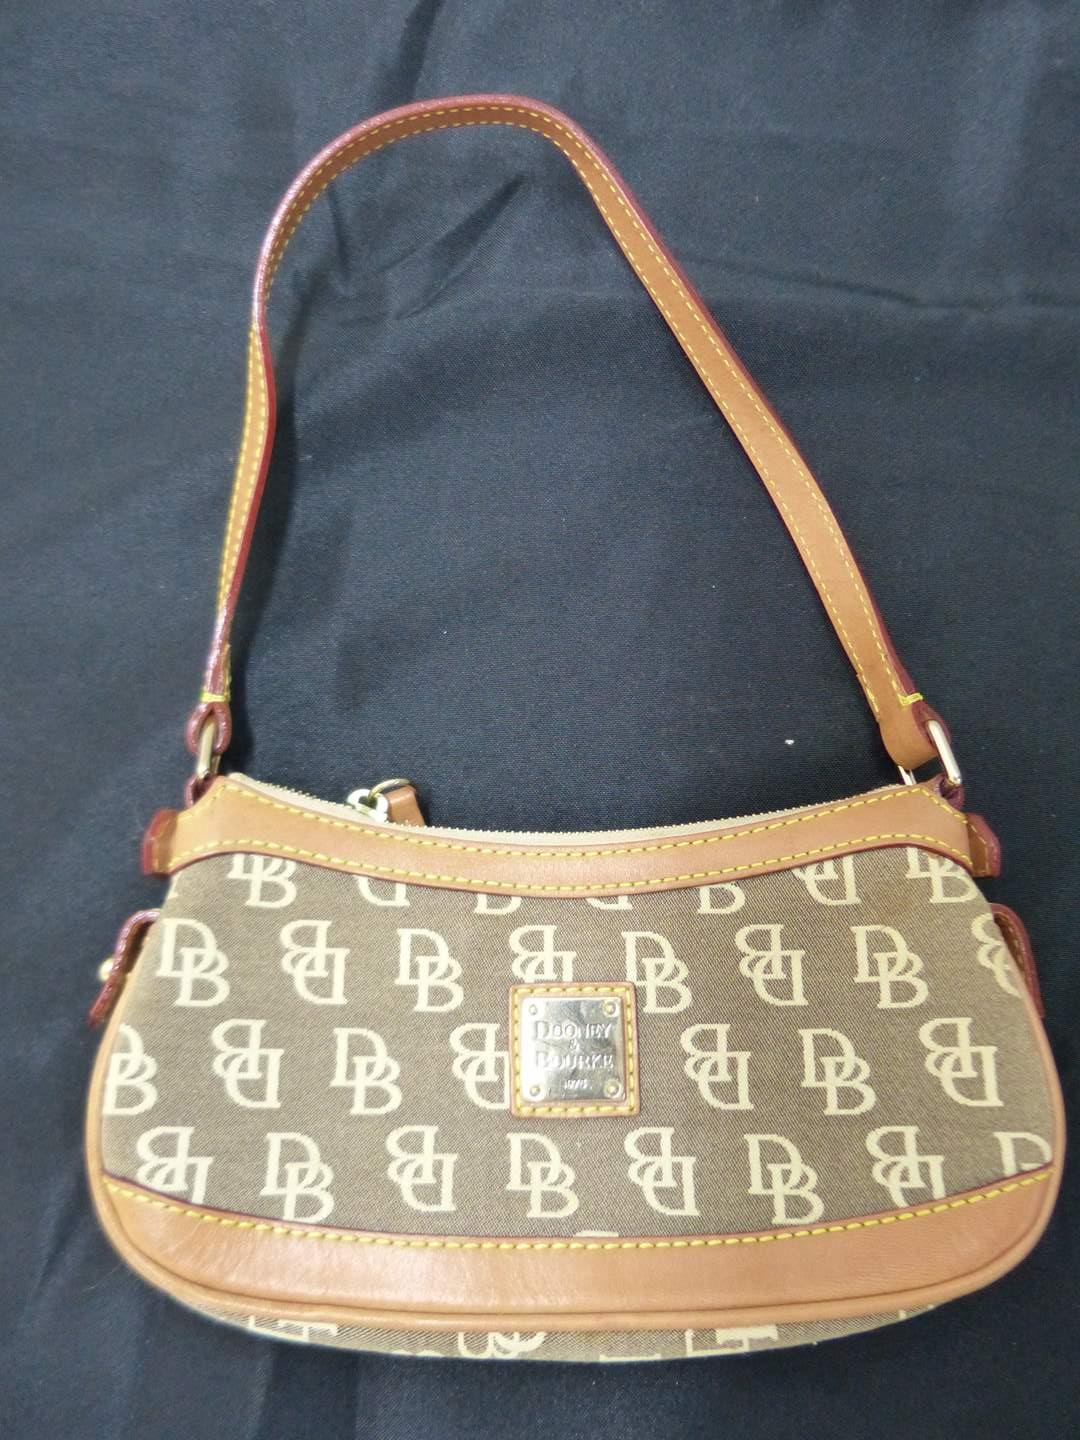 Lot # 202  Authentic Dooney & Burke purse (main image)